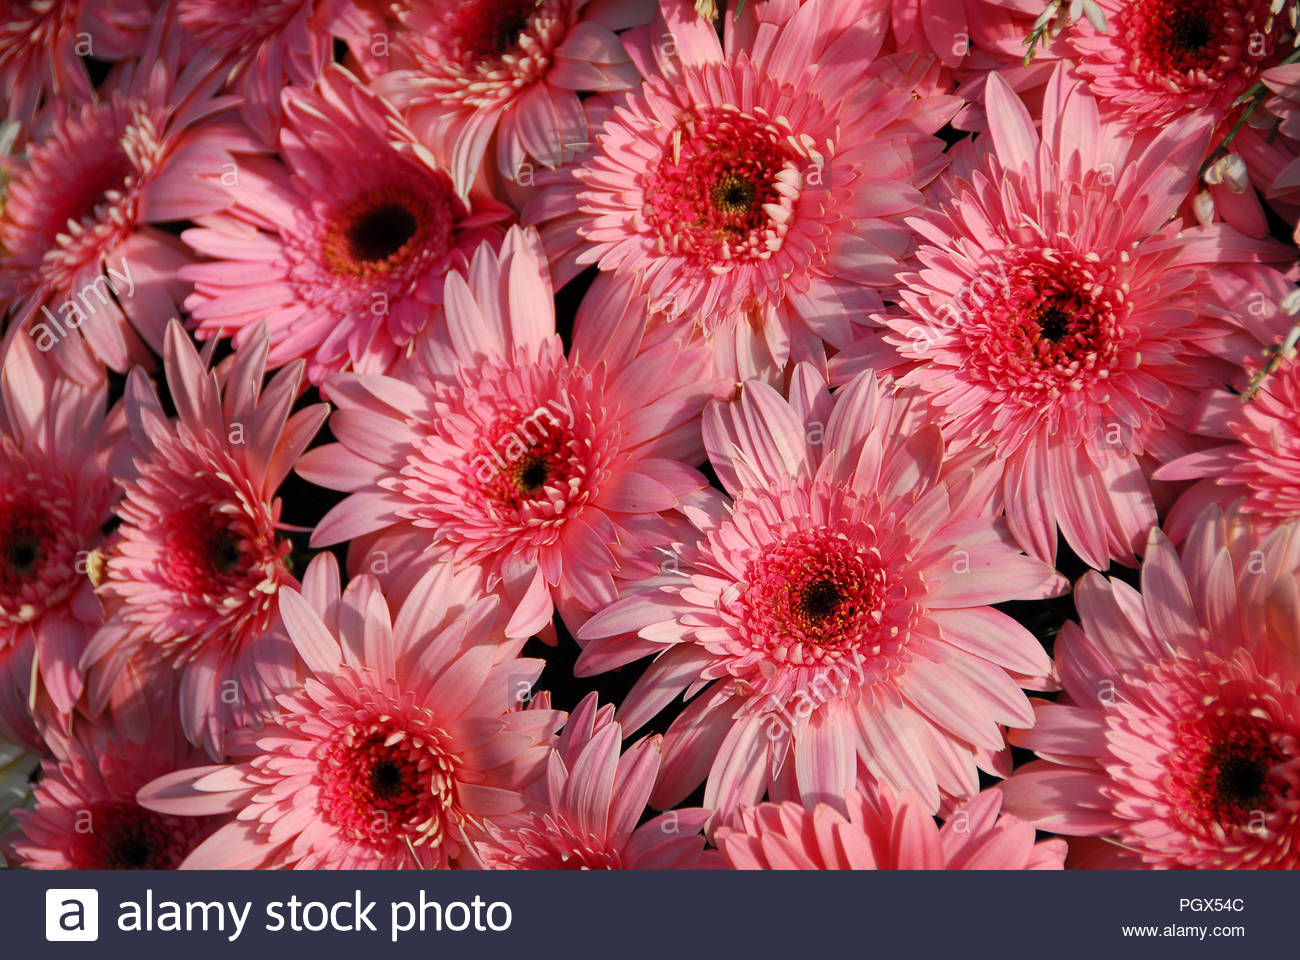 Cluster Of Pink Gerbera Daisy Flowers In Bloom Stock Photo